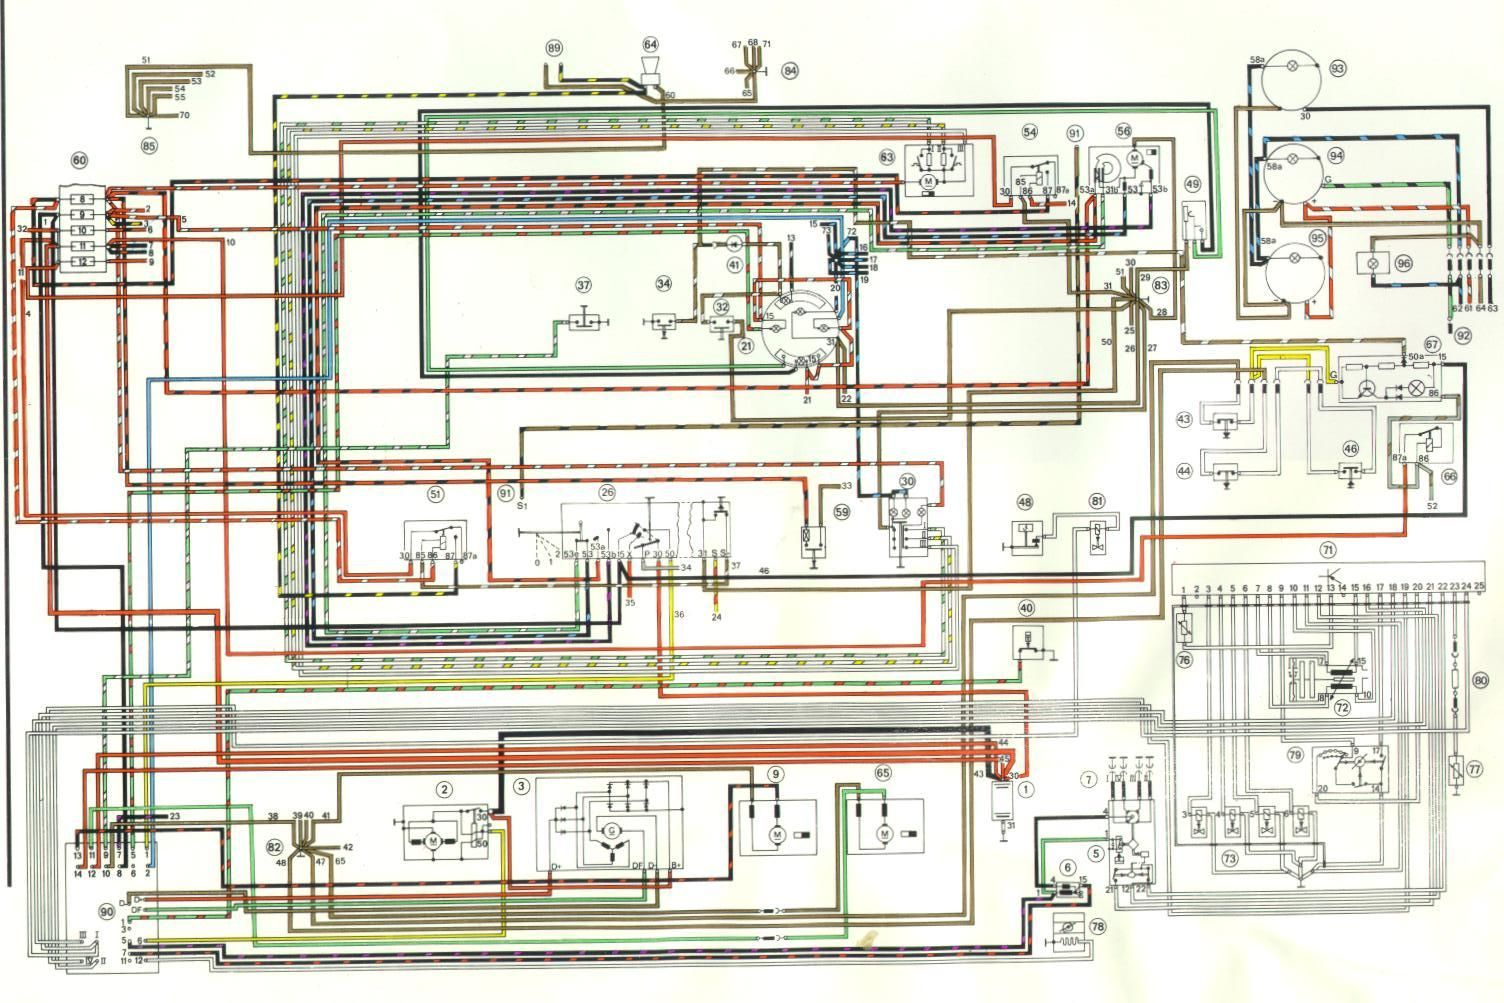 73 914 PORSCHE | Porsche 914 Electrical Diagrams